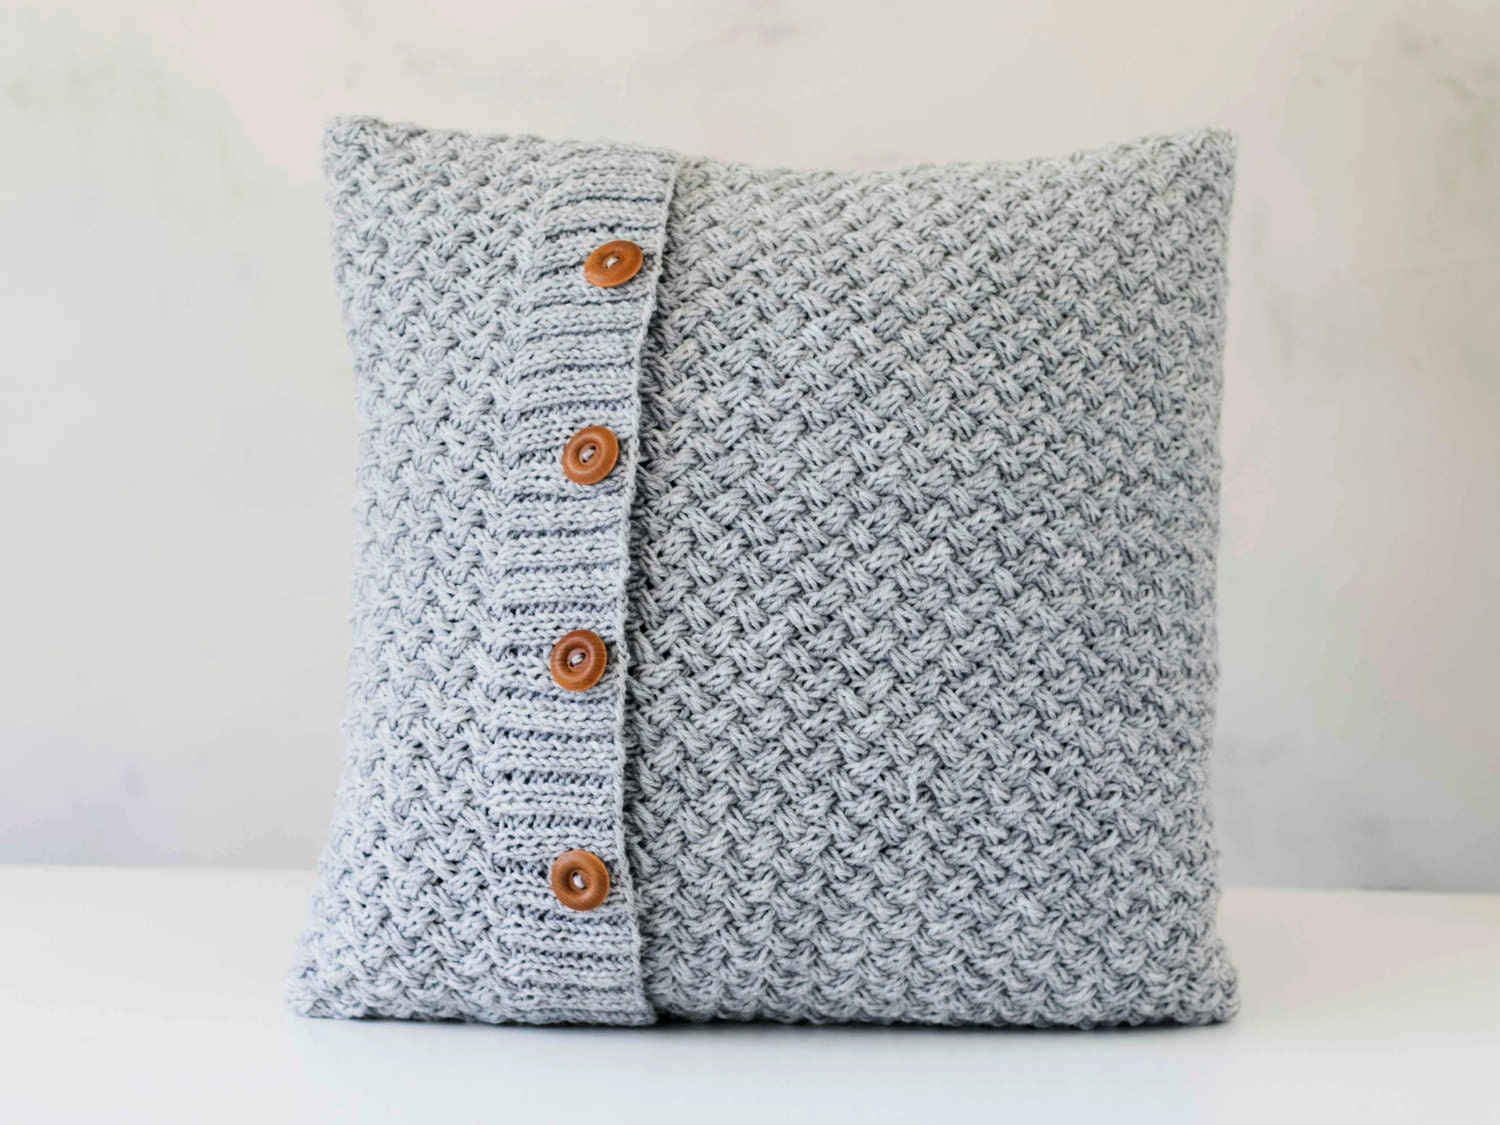 Knitting Pillow Pattern : Knit pillow grey knitted chunky scandinavian style